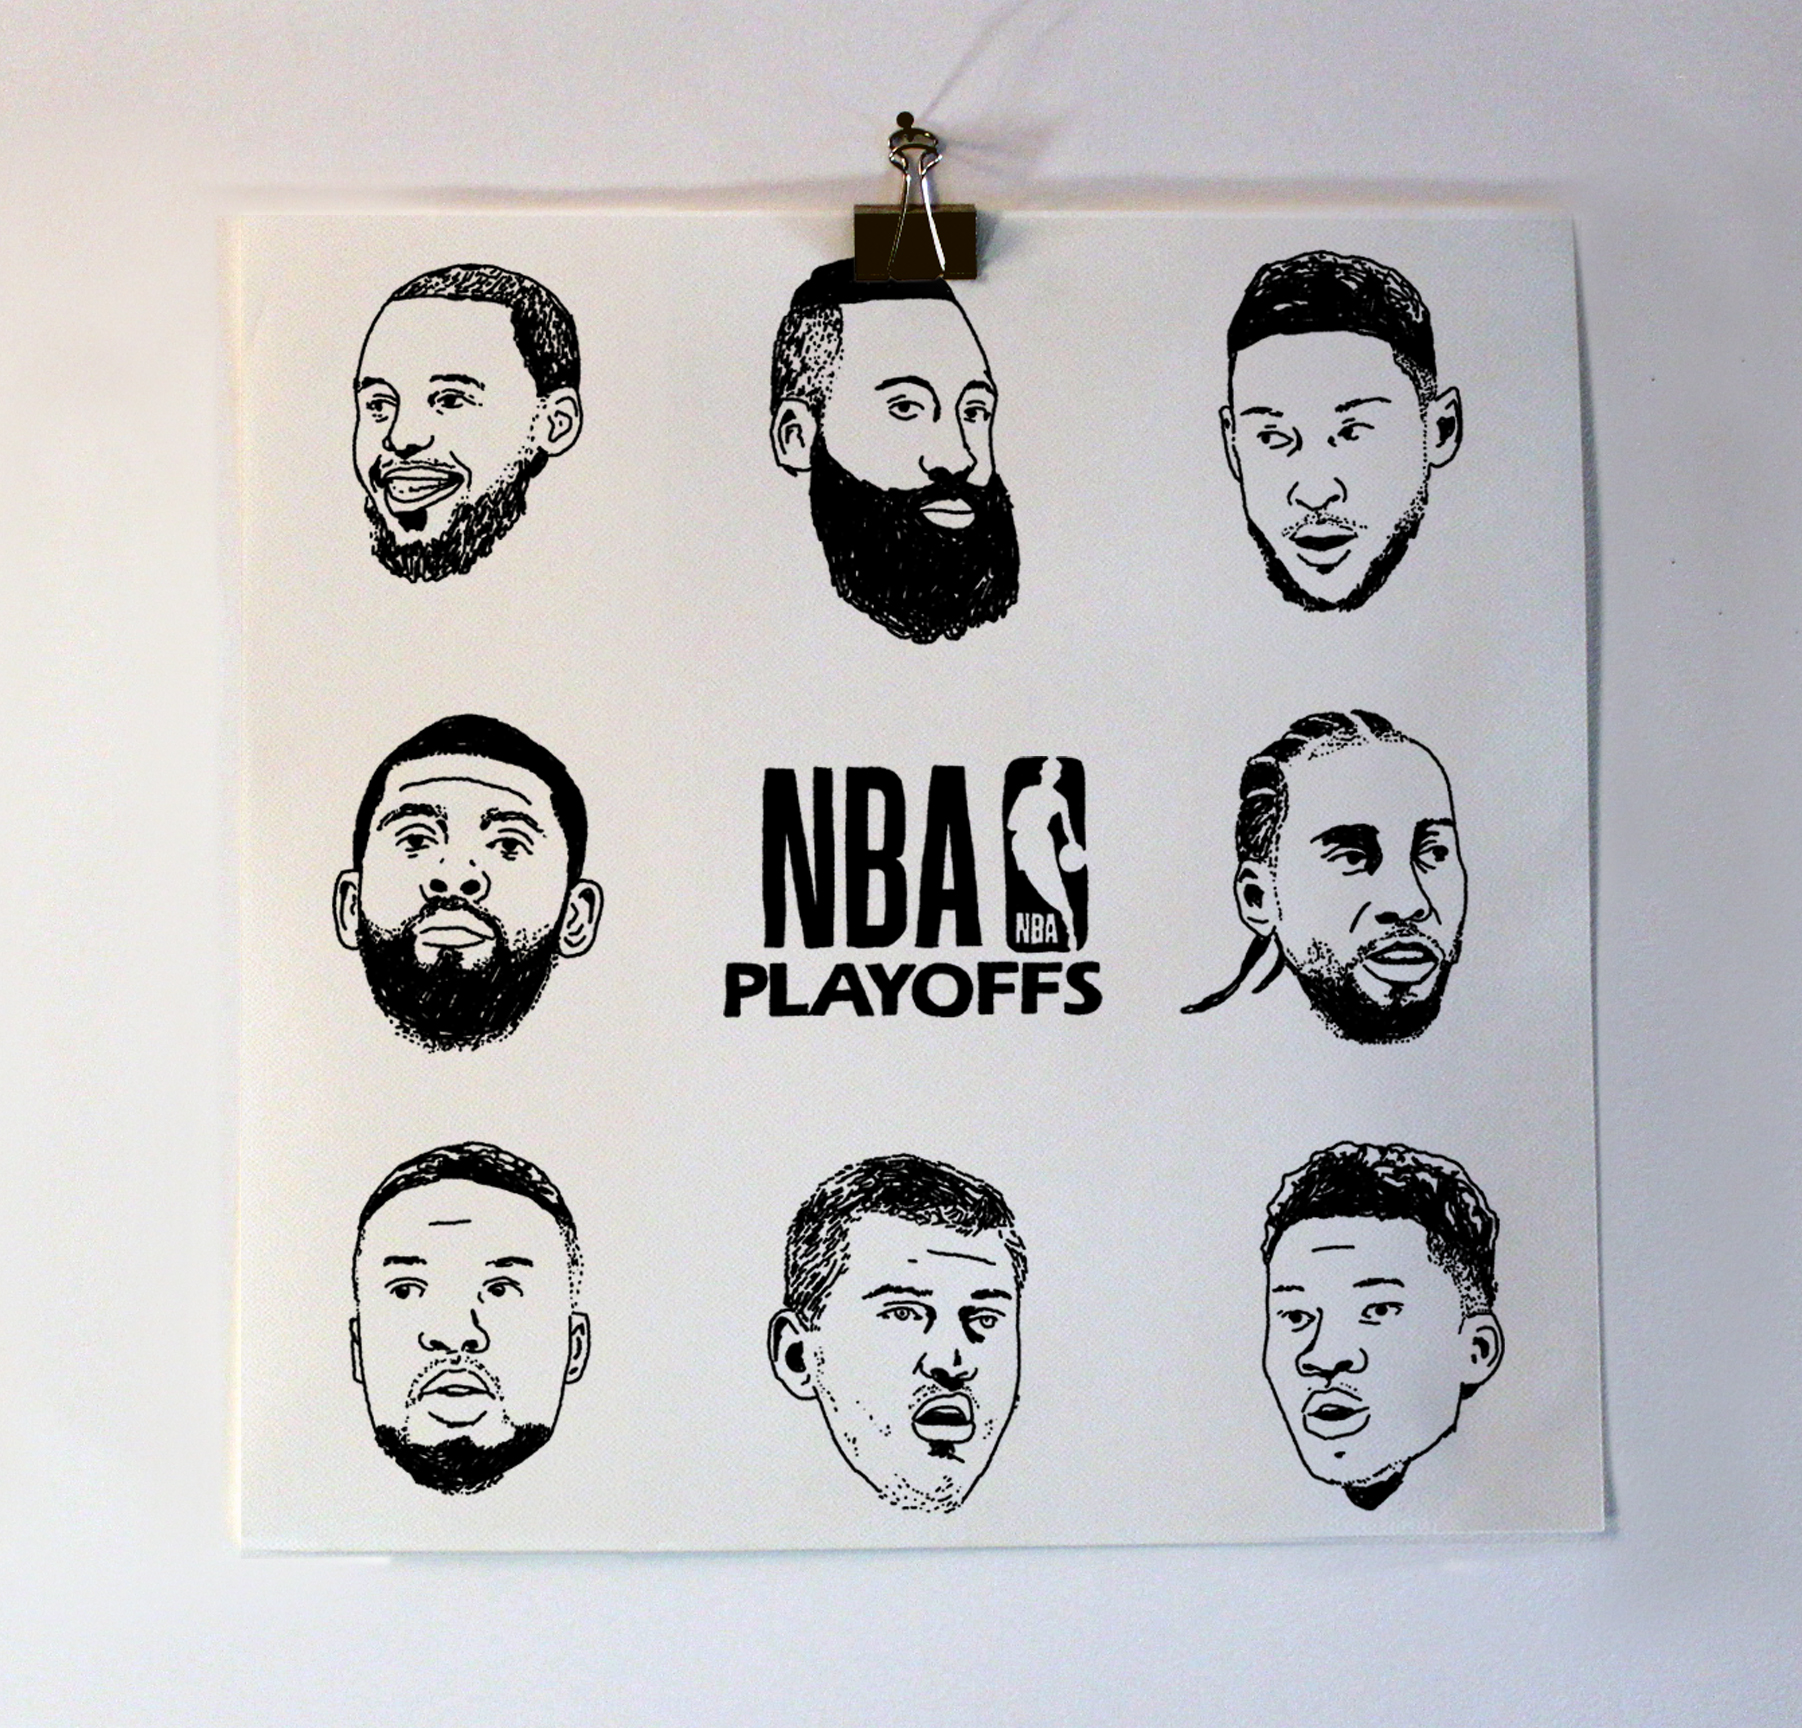 nba mvps on wall.jpg